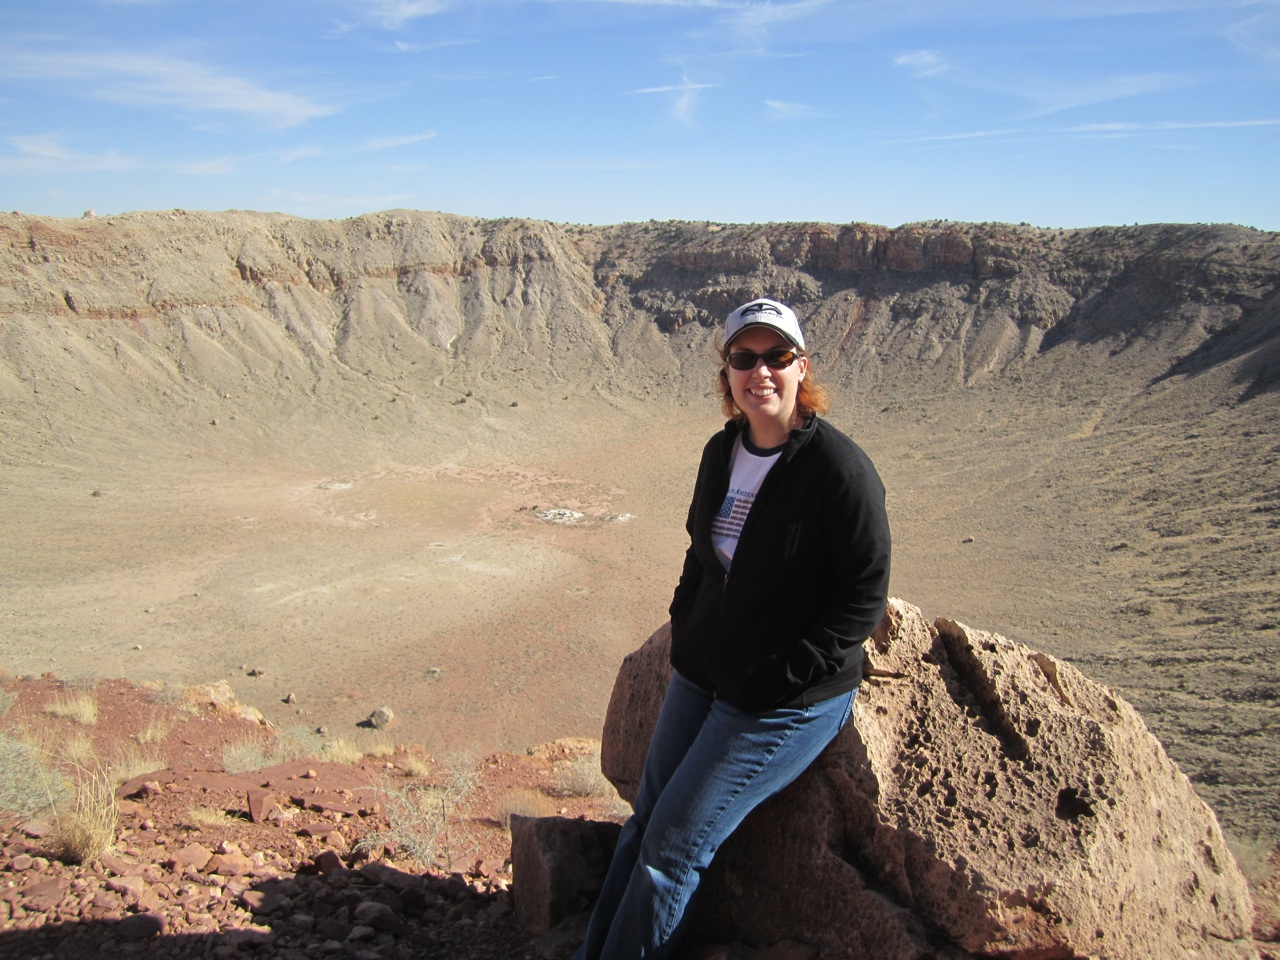 Brenda And The Meteor Crater